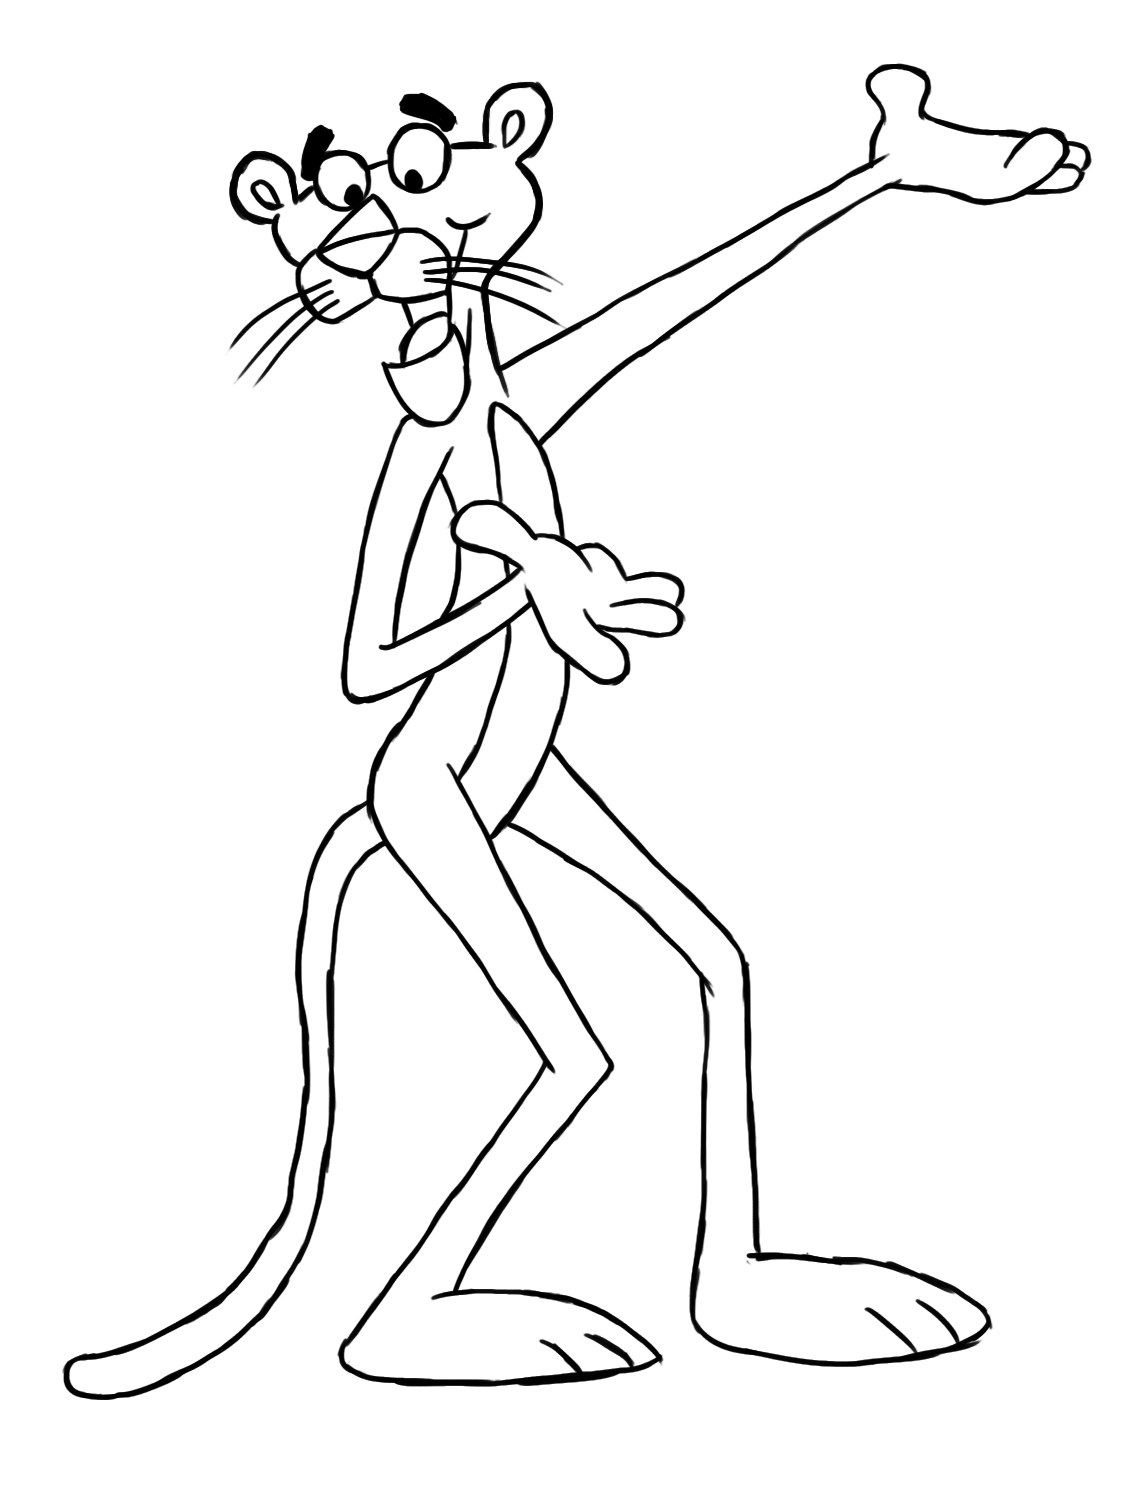 panther coloring pages - photo#27